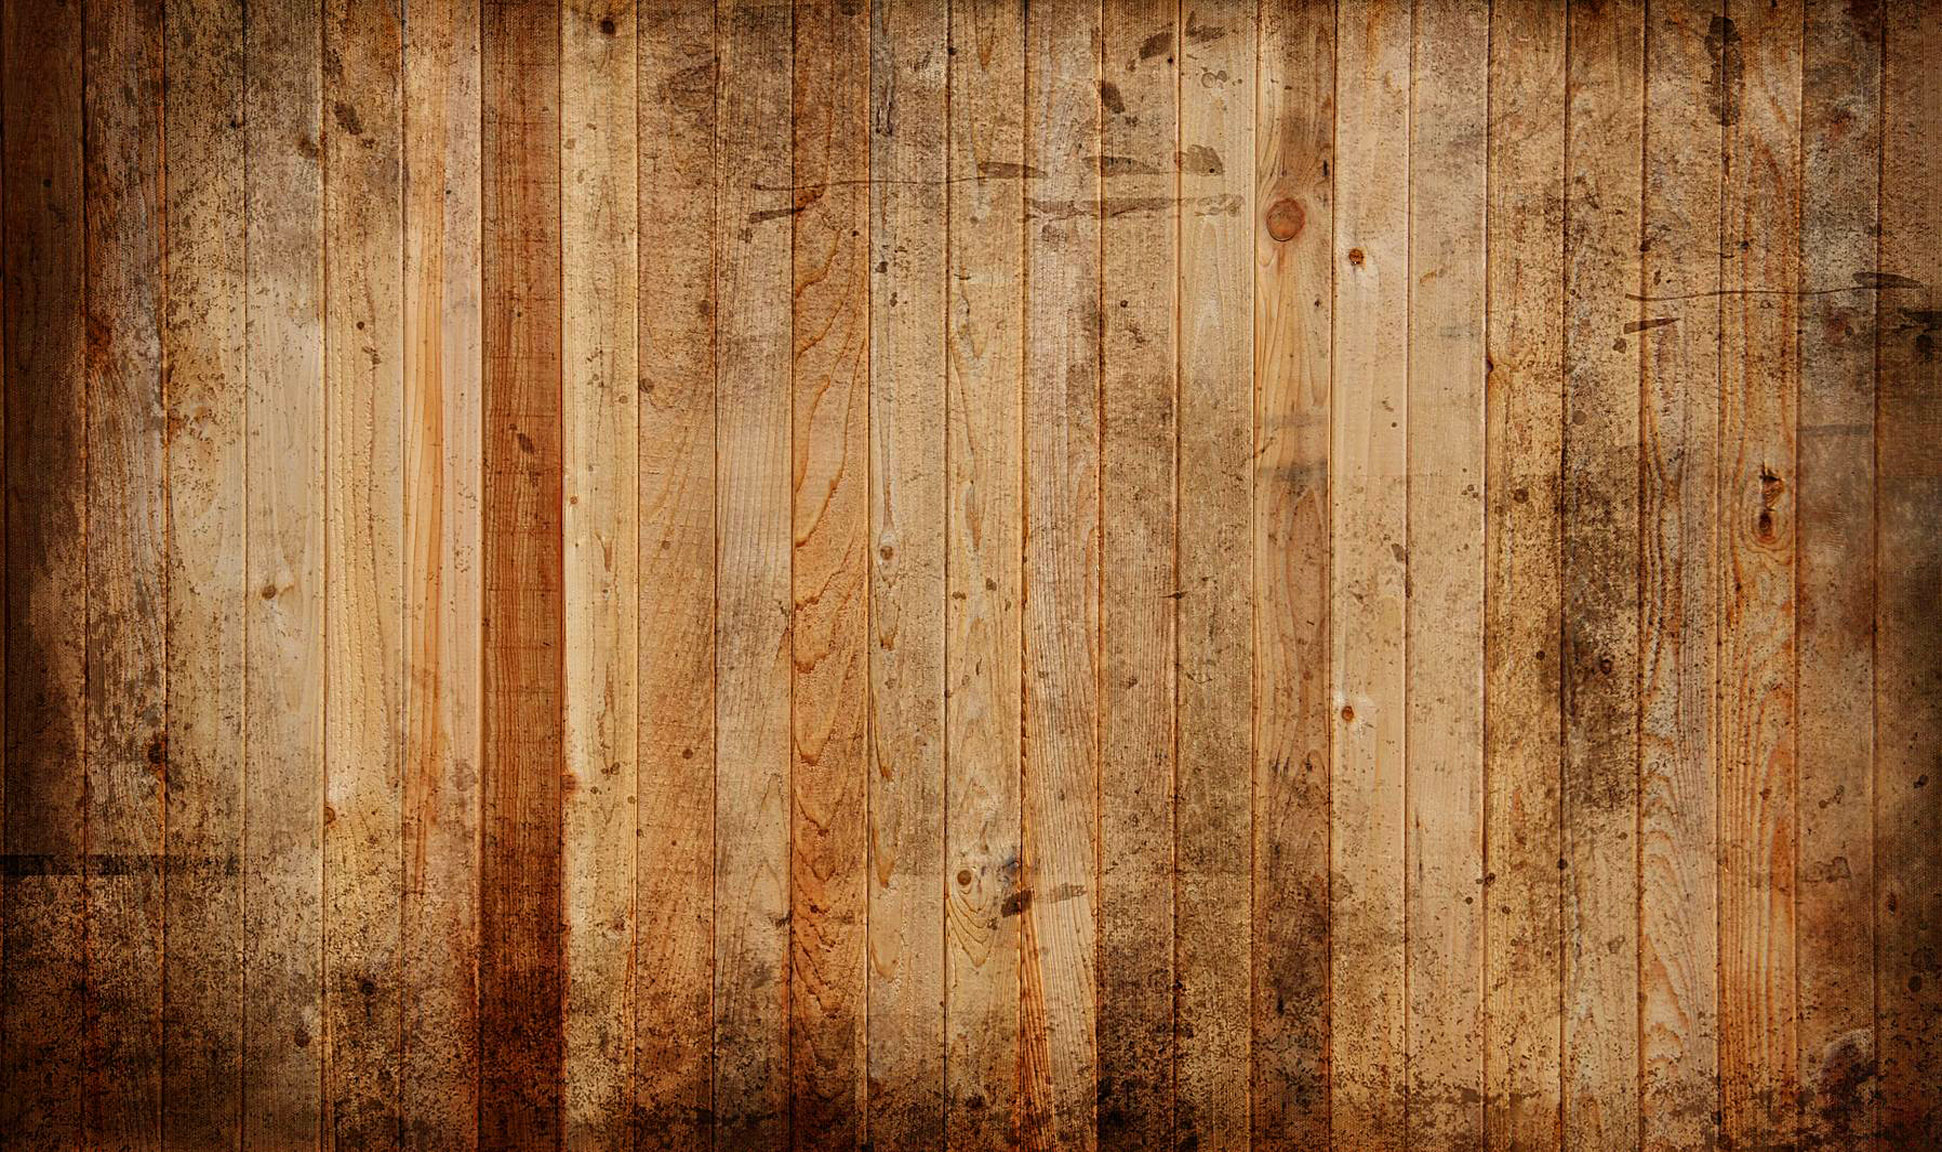 k-awesome-the-red-barn-woodland-wa-red-barn-wood-background-red ...